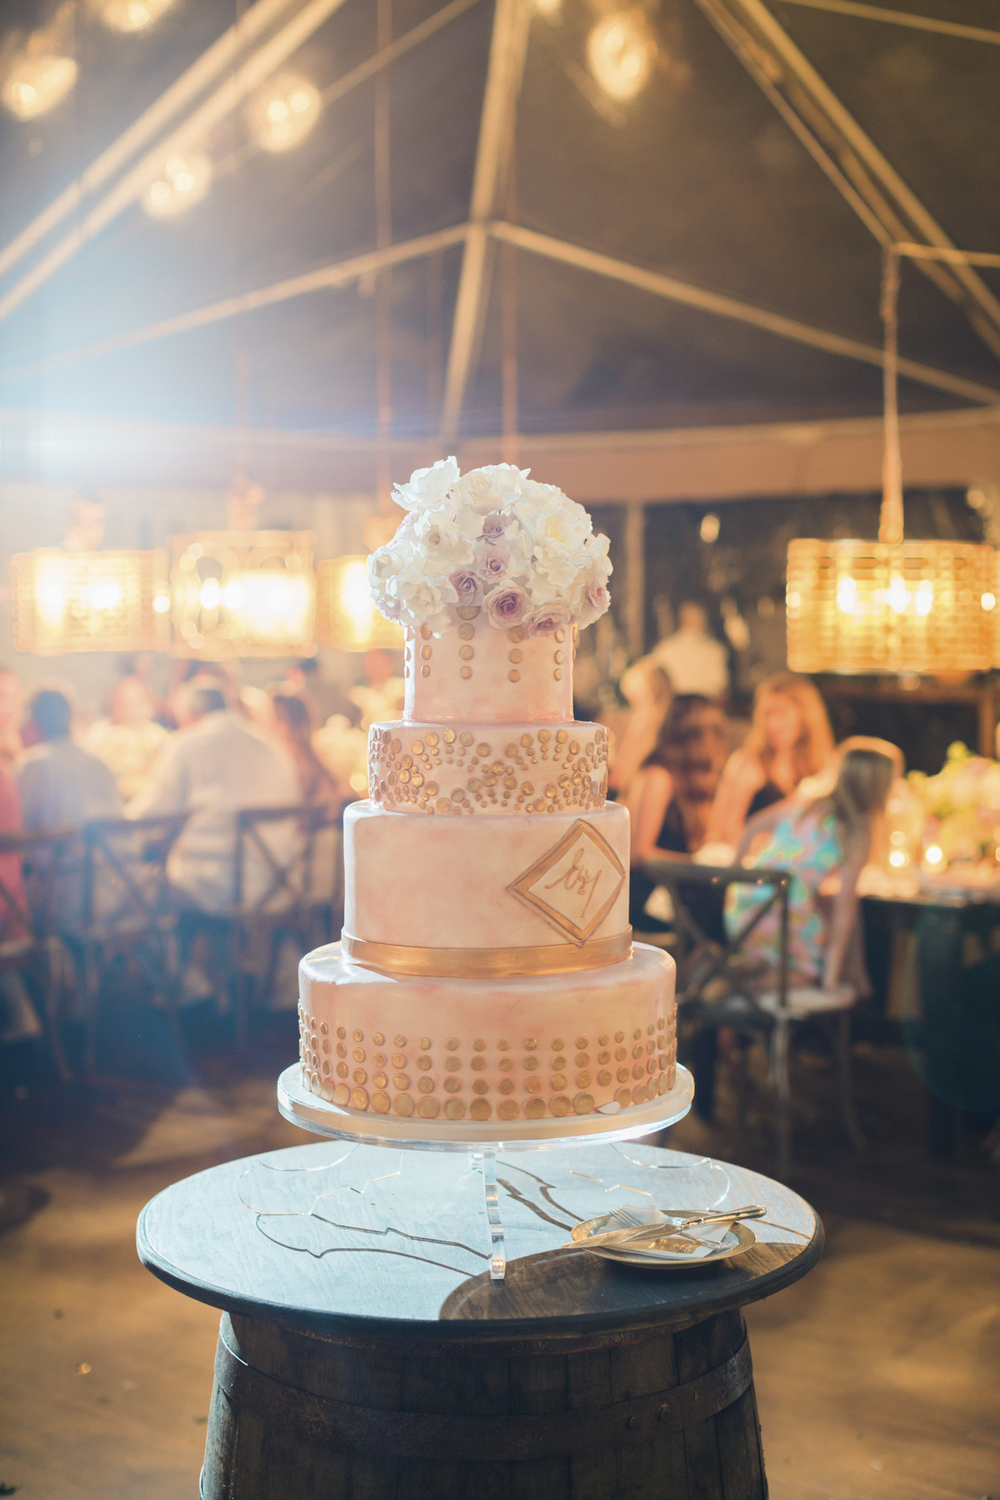 south_carolina_farm_wedding_rustic_chic_surprise_secret_luxe_wedding_bachelorette_emily_maynard_real_weddings-49.jpg